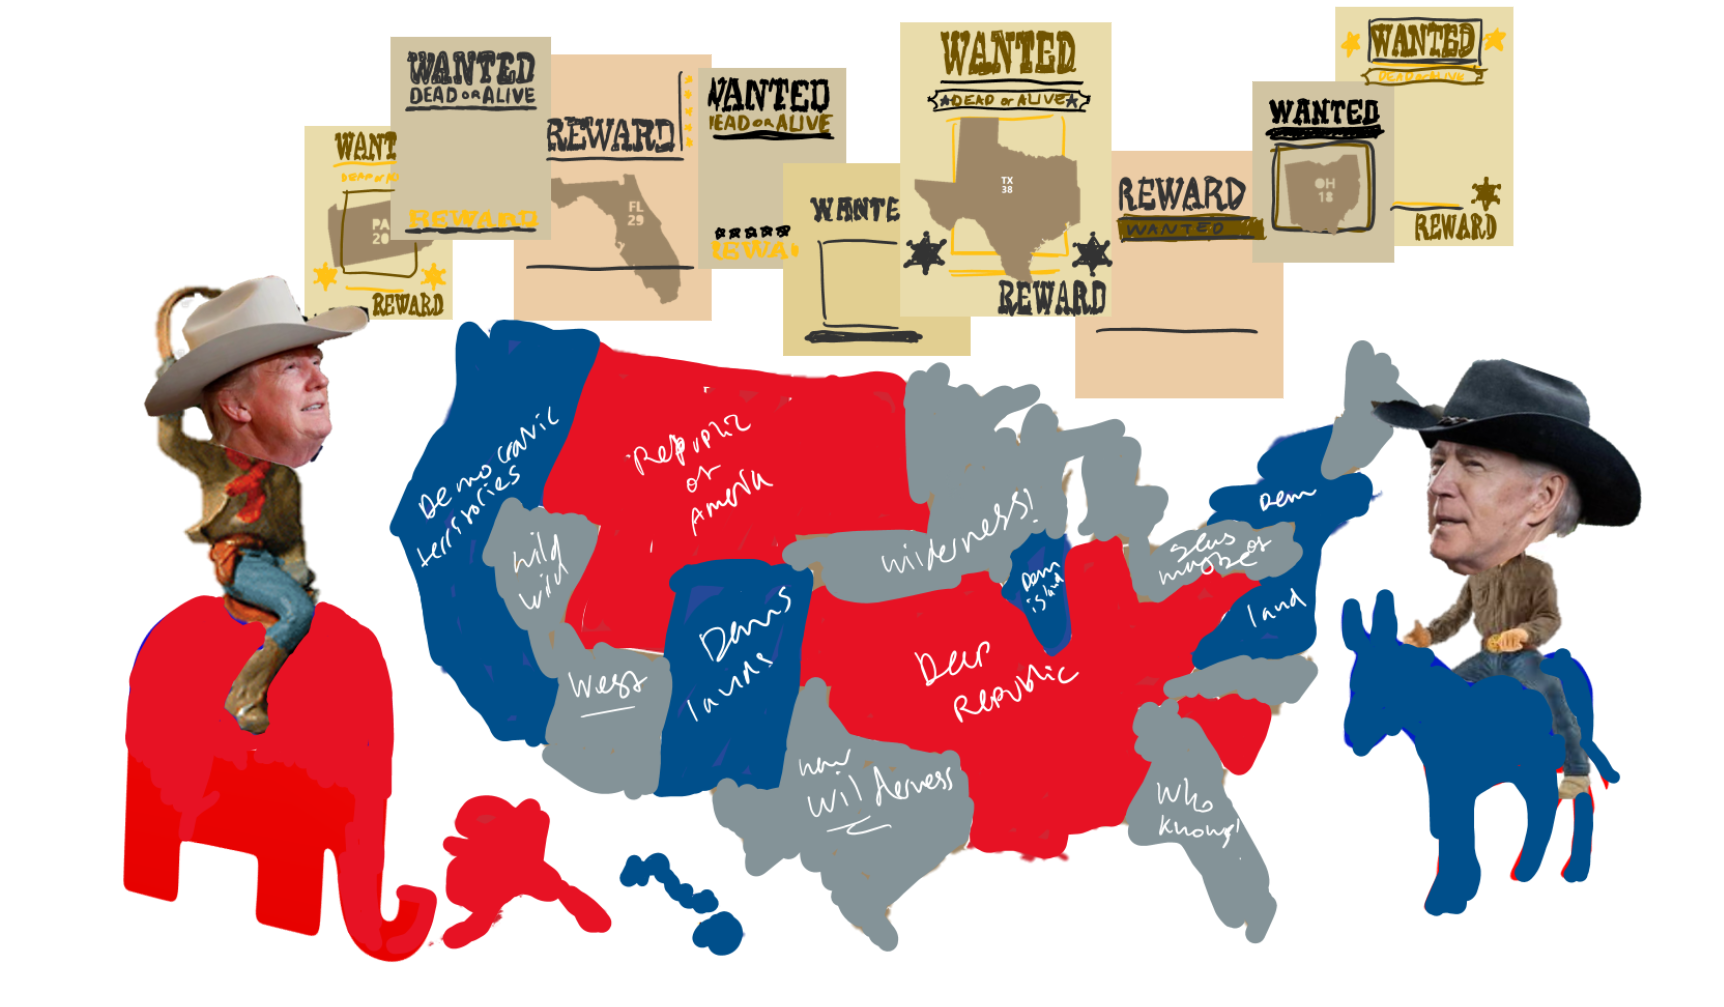 Sketch of Trump and Biden as cowboys in front of an election map with wanted posters